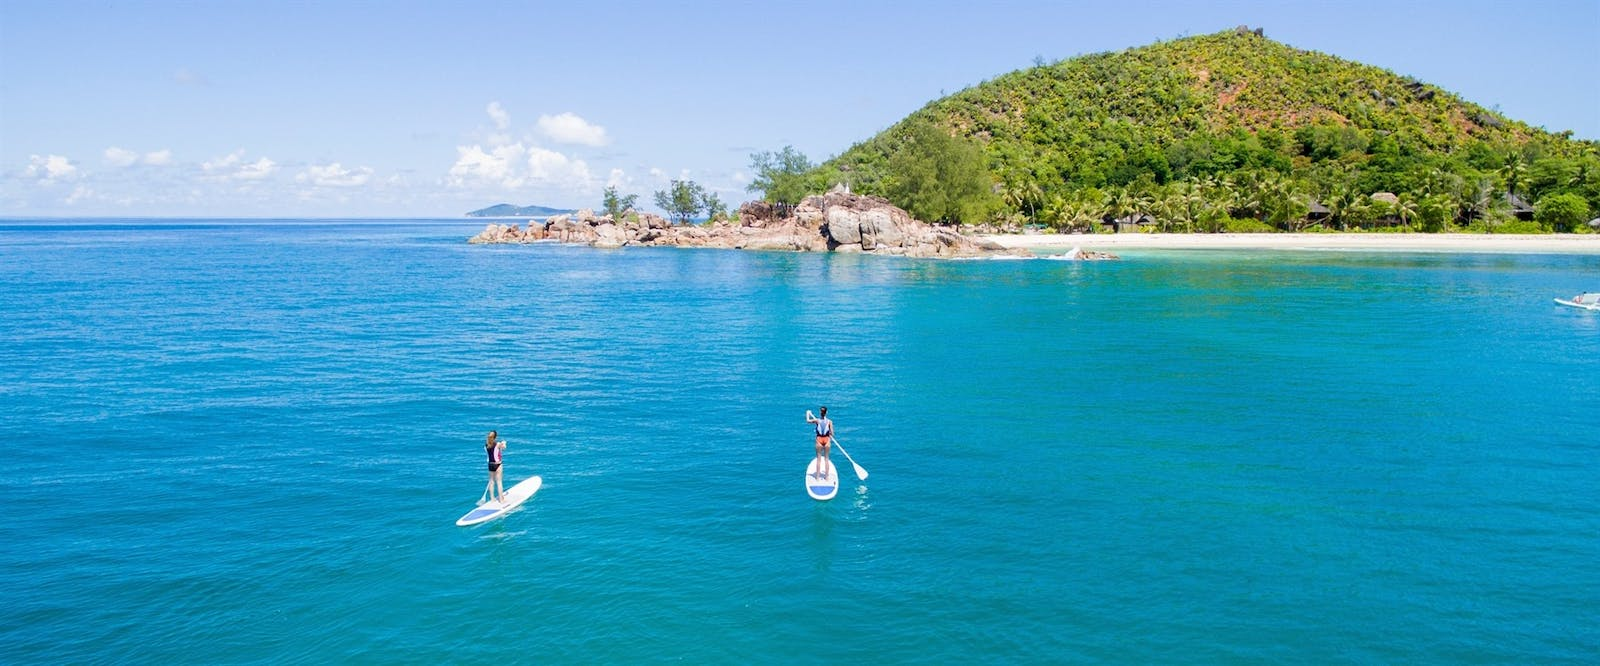 Water Sports at Constance Lemuria Resort, Seychelles